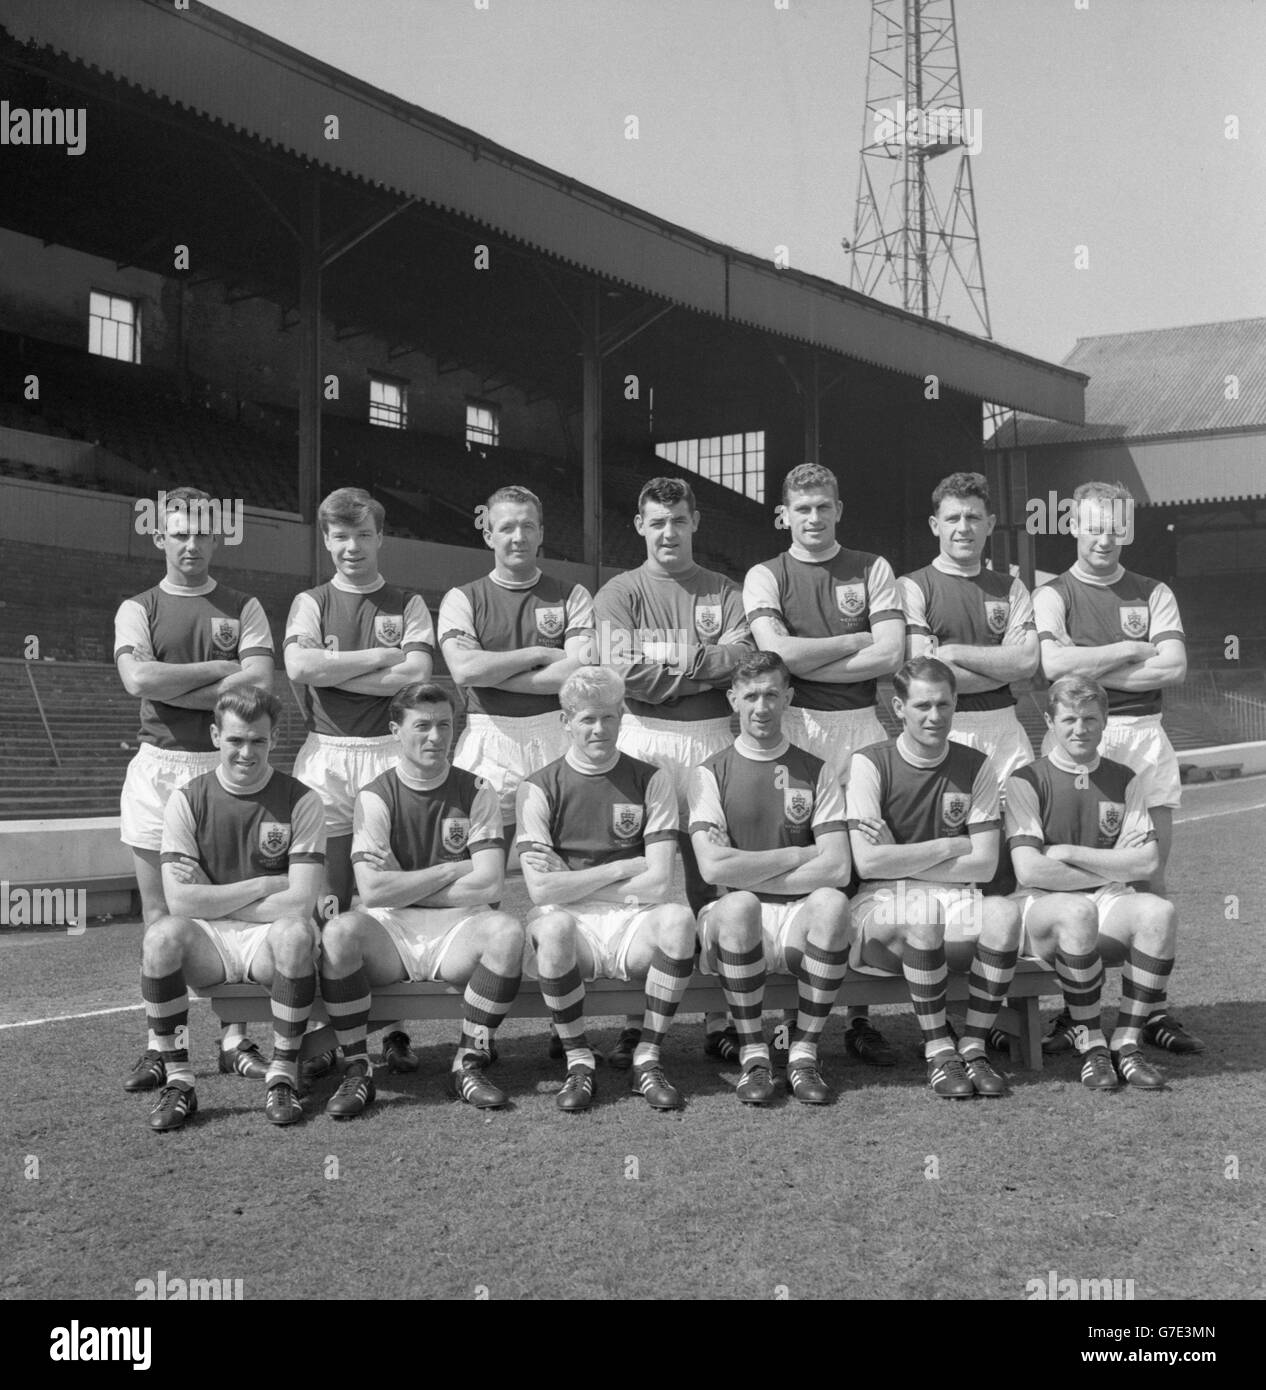 Soccer - FA Cup - Burnely FC Photocall - Stock Image